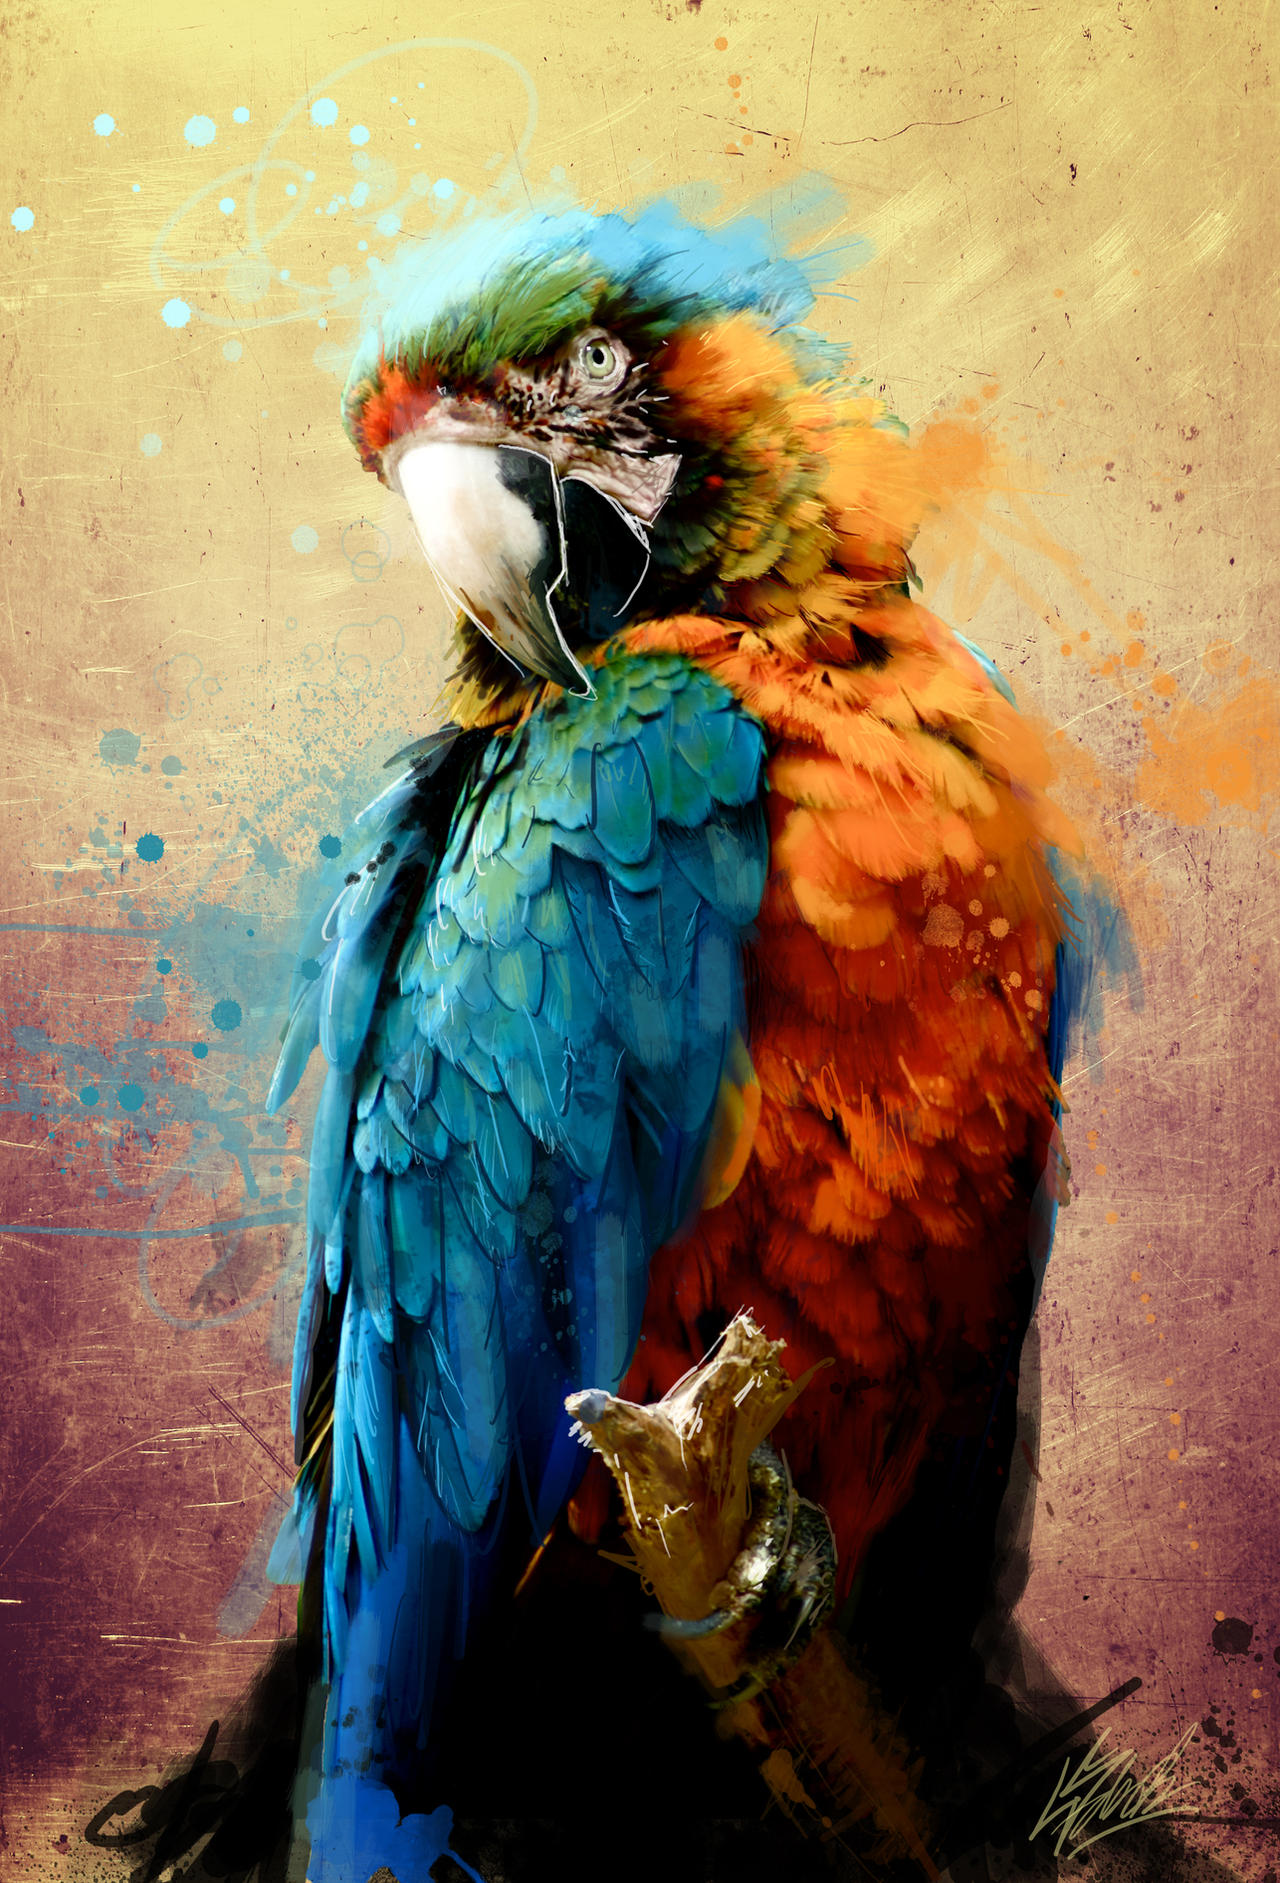 Parrot by PortratESeveN